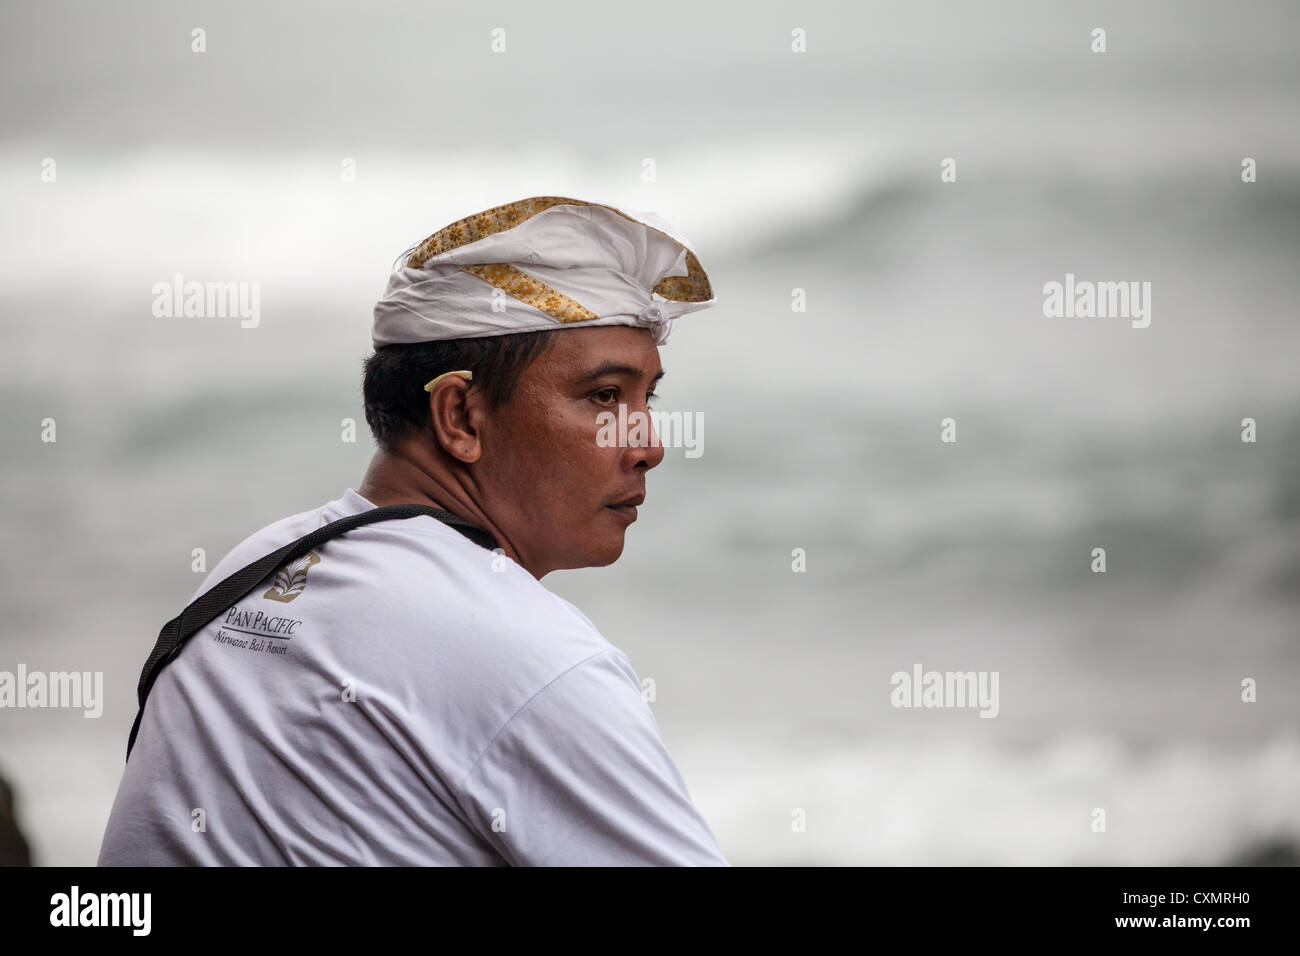 Balinese in traditional Clothes at the Hindu Temple Pura Tanahlot on Bali - Stock Image